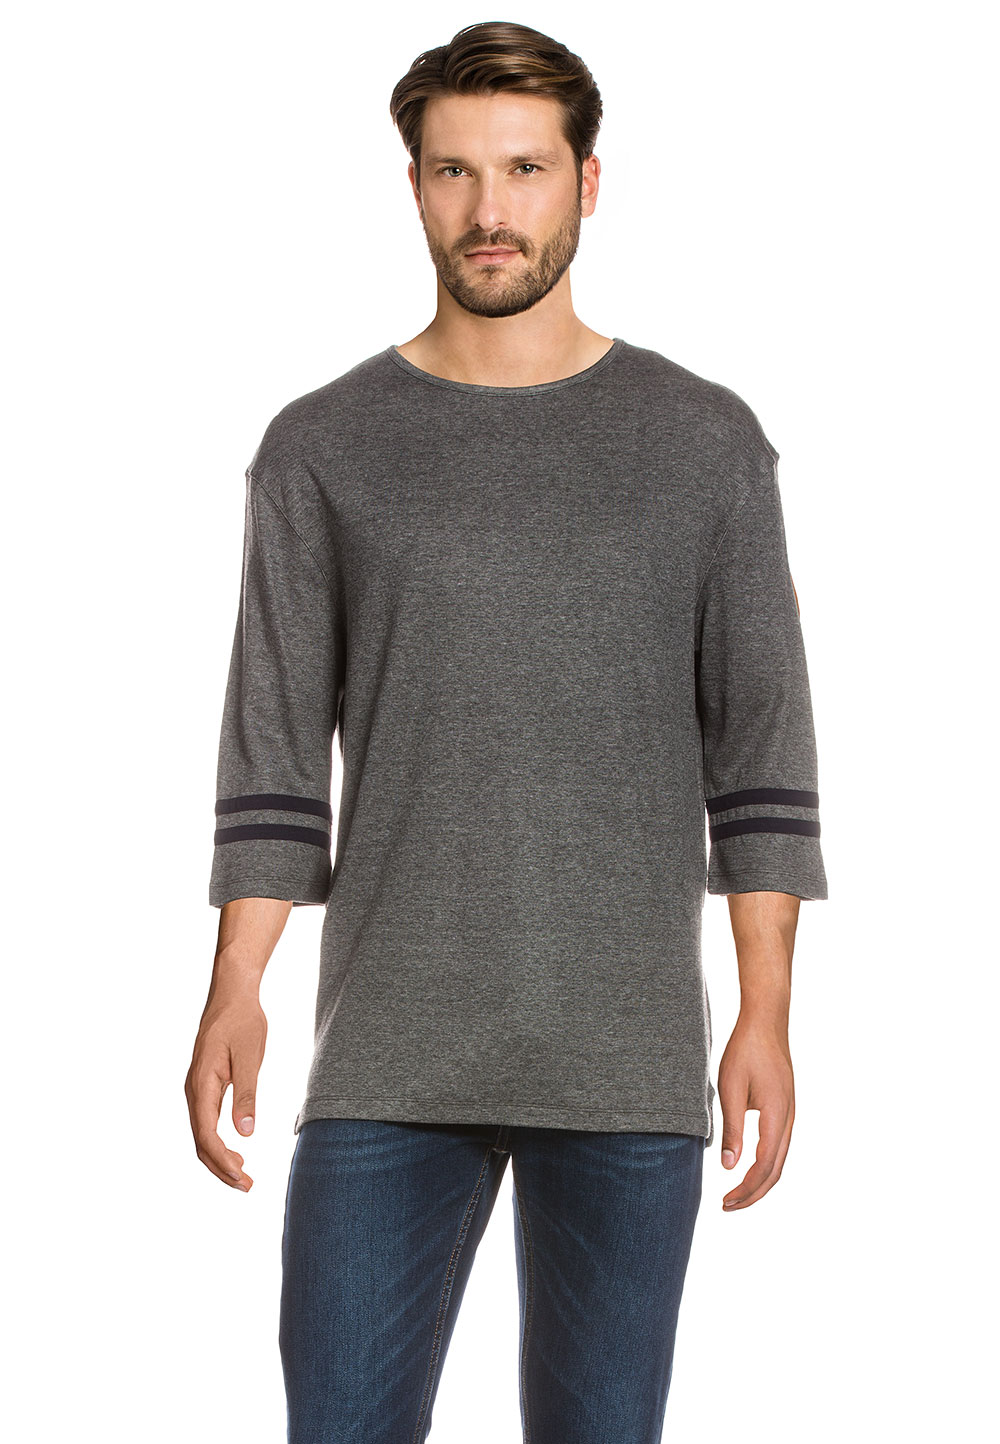 Hamilton AND Hare Pullover, 3/4-Arm, Rundhals grau | Bekleidung > Pullover > Sonstige Pullover | Grau | Hamilton AND Hare